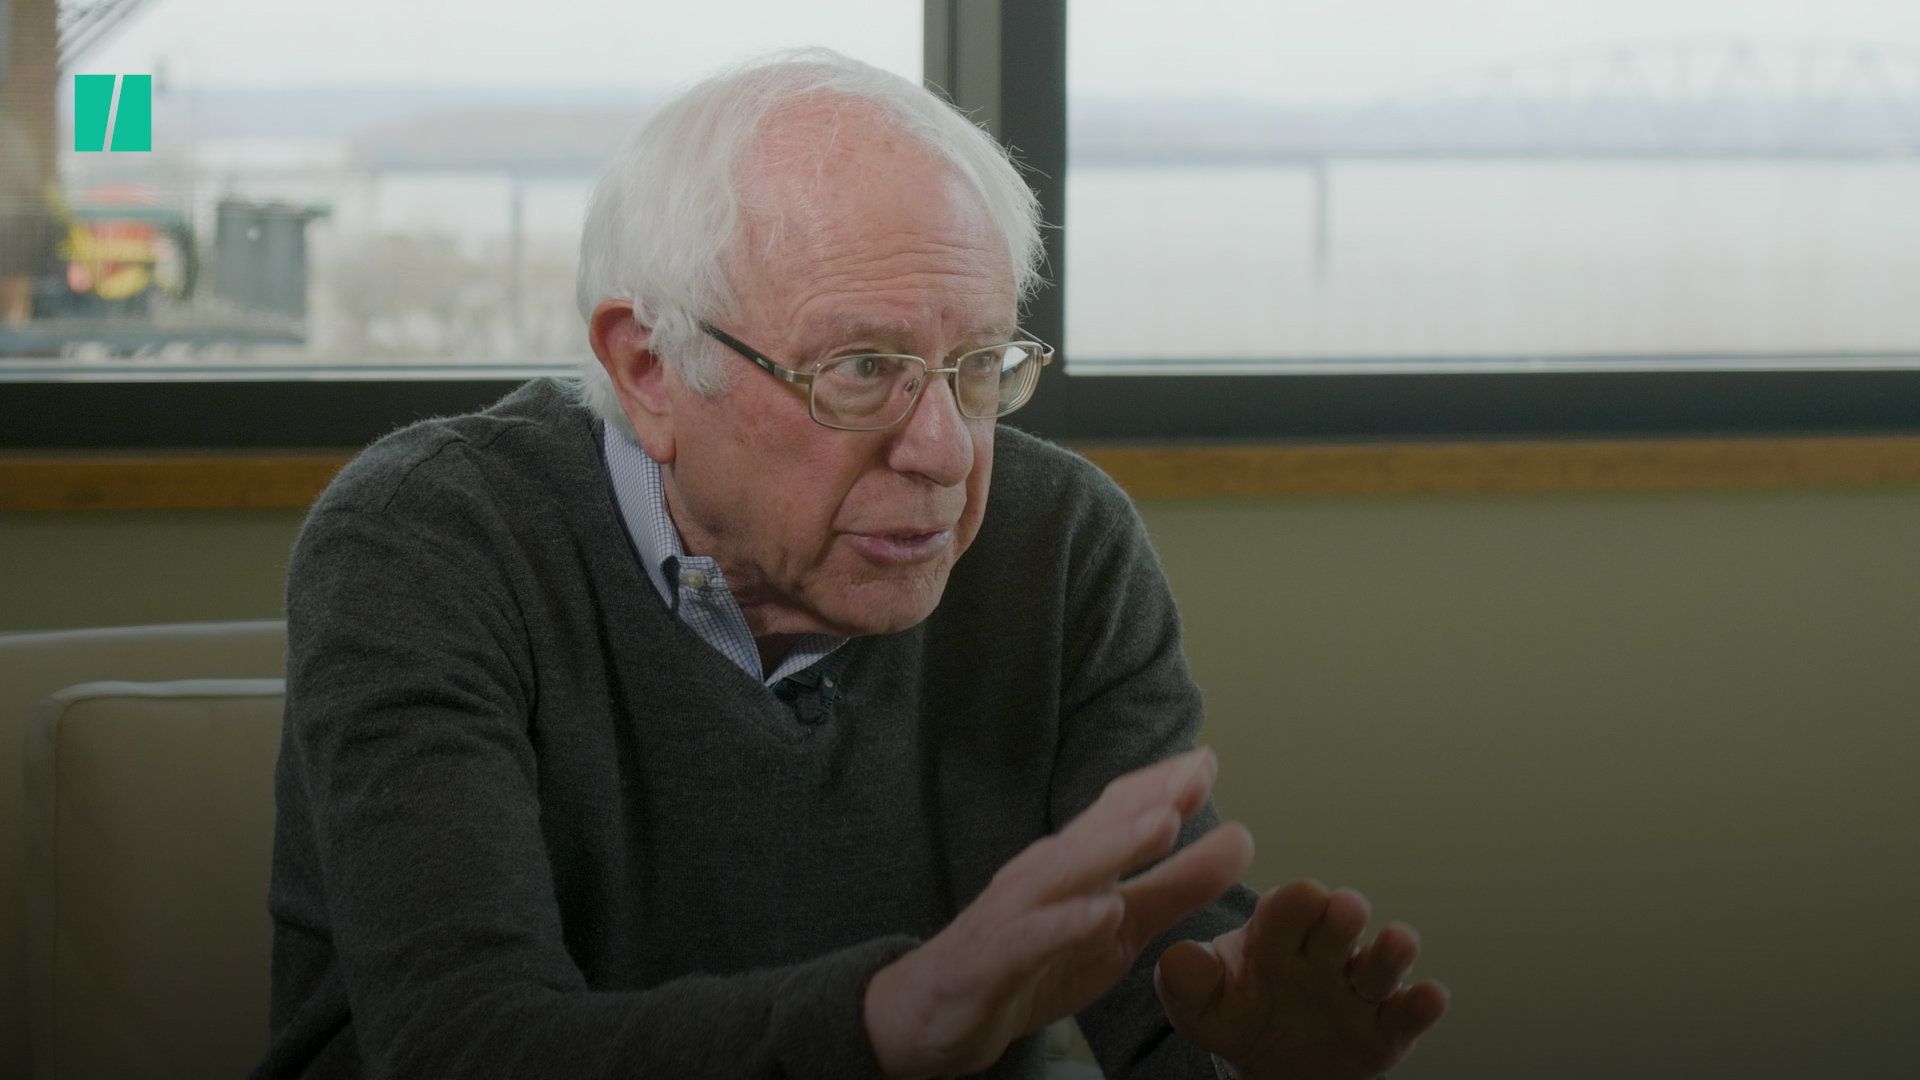 Sanders Outlines Health Care Vision